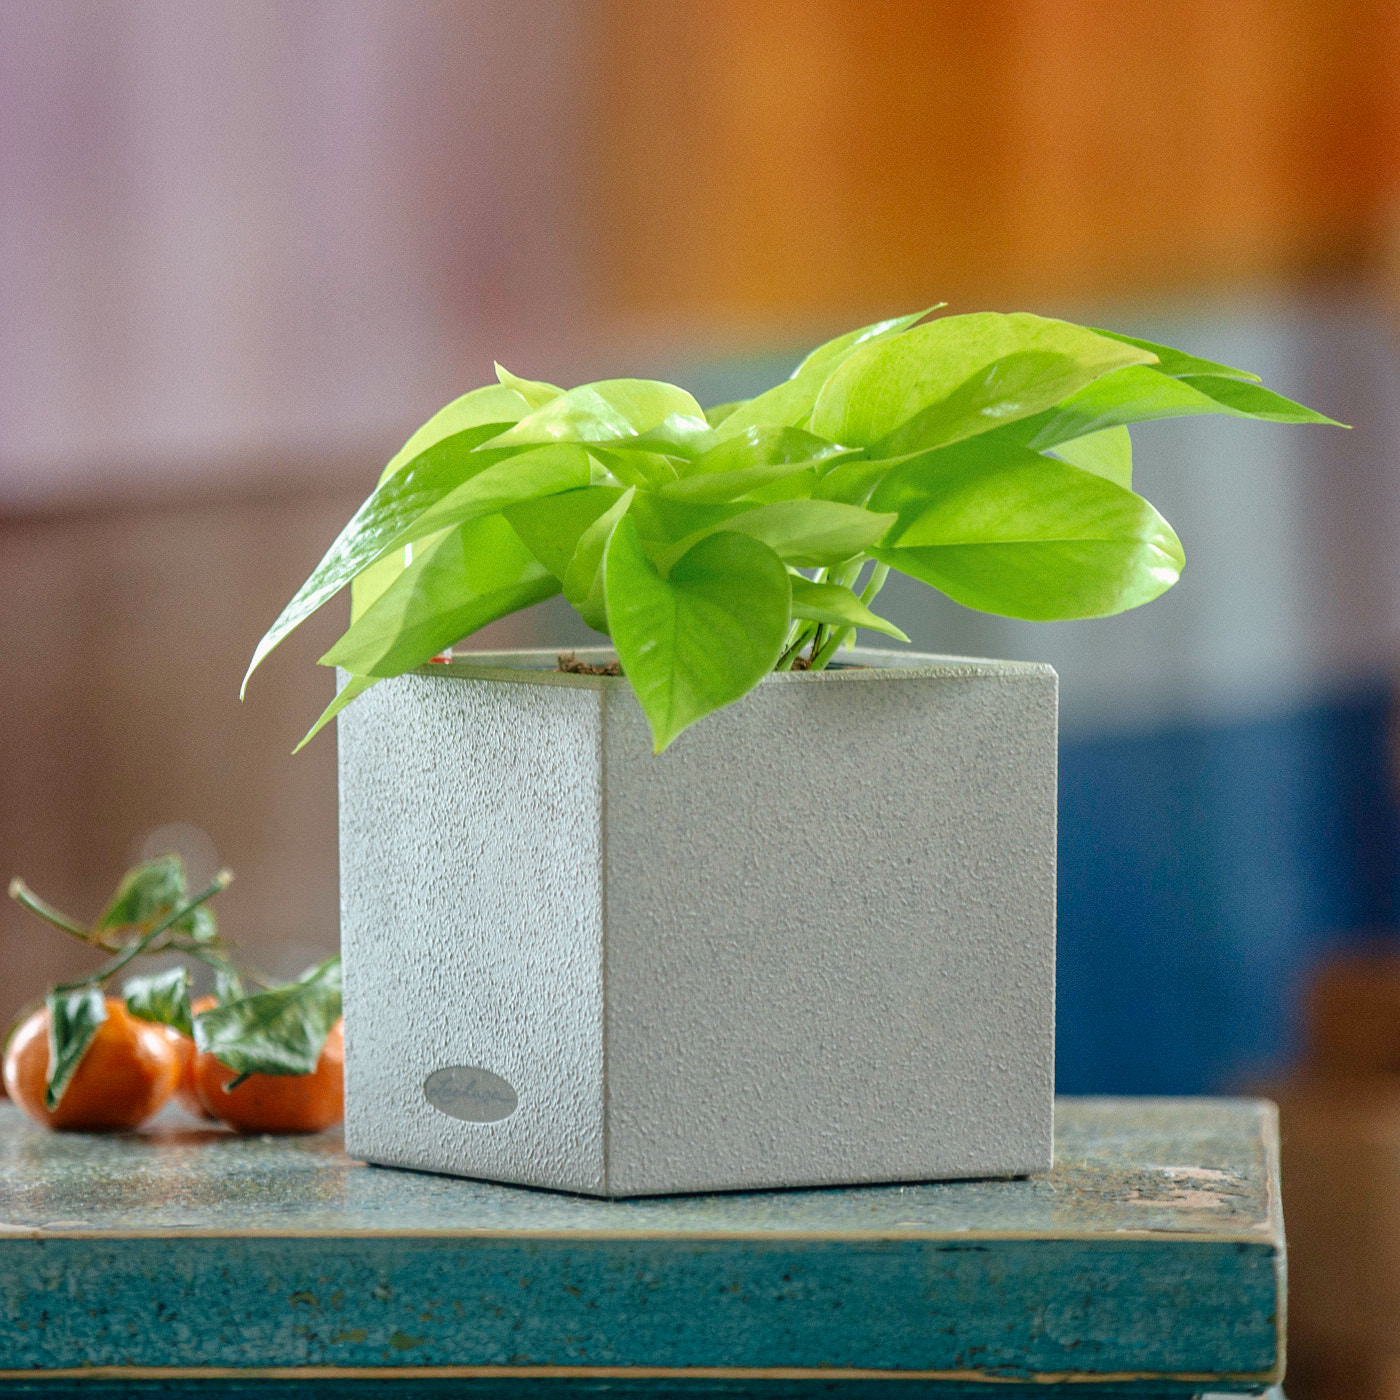 Pothos Neon Plant In Lechuza Canto 14 Beige Planter | My City Plants